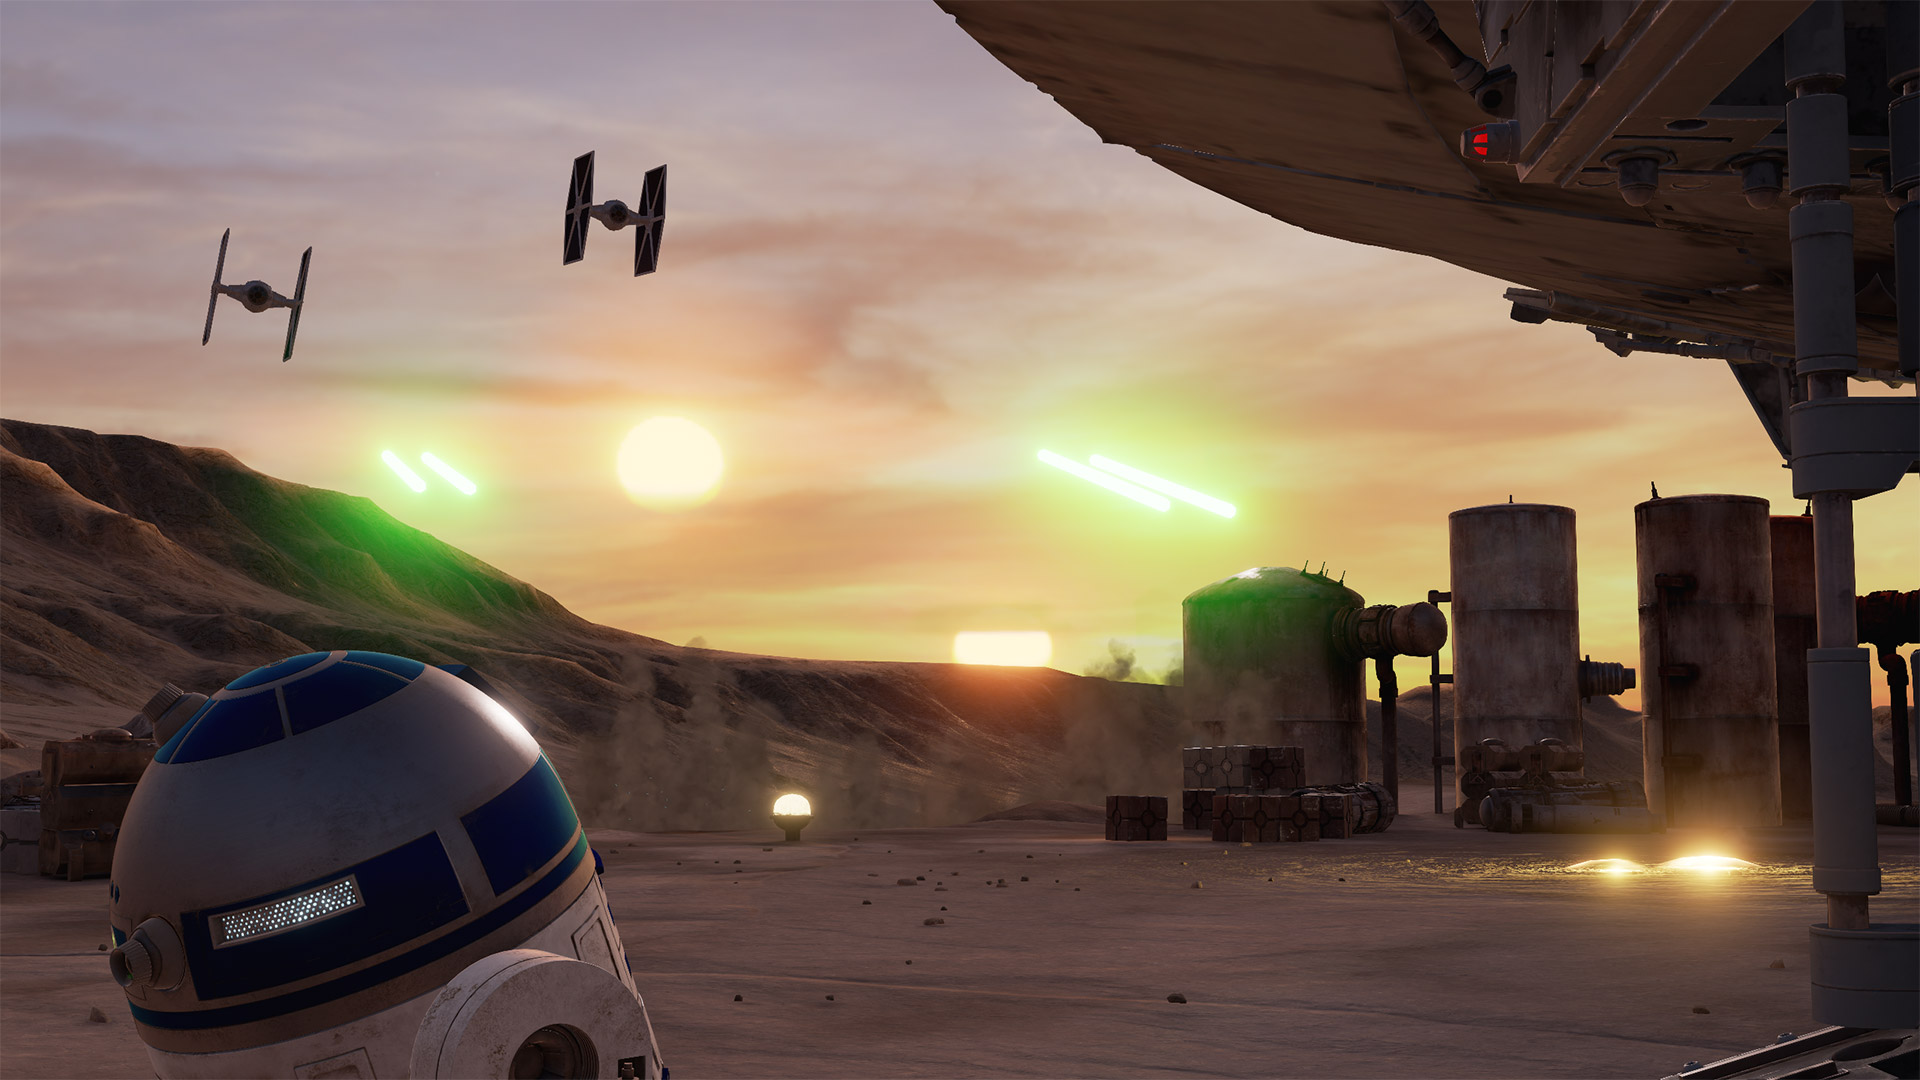 Star Wars VR Trials On Tatoonie Coming To Steam